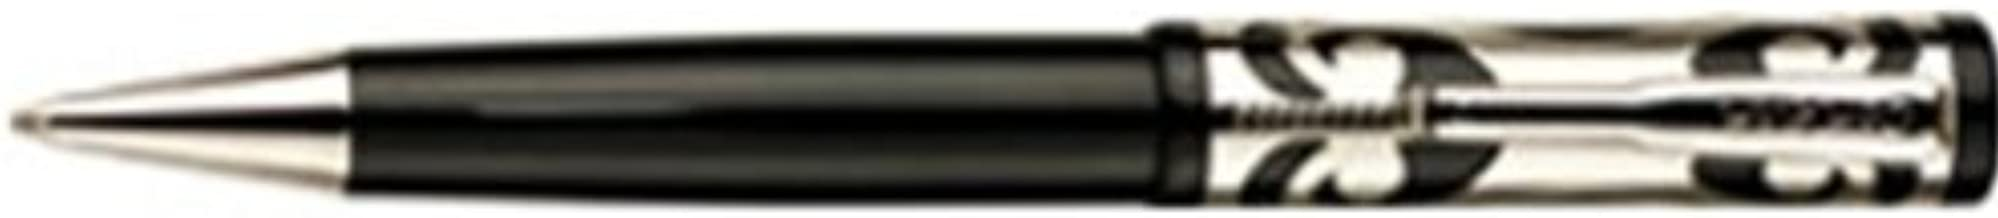 Conklin Deco Crest Mark Twain Limited Edition Sterling Silver Overlay Ballpoint Pen